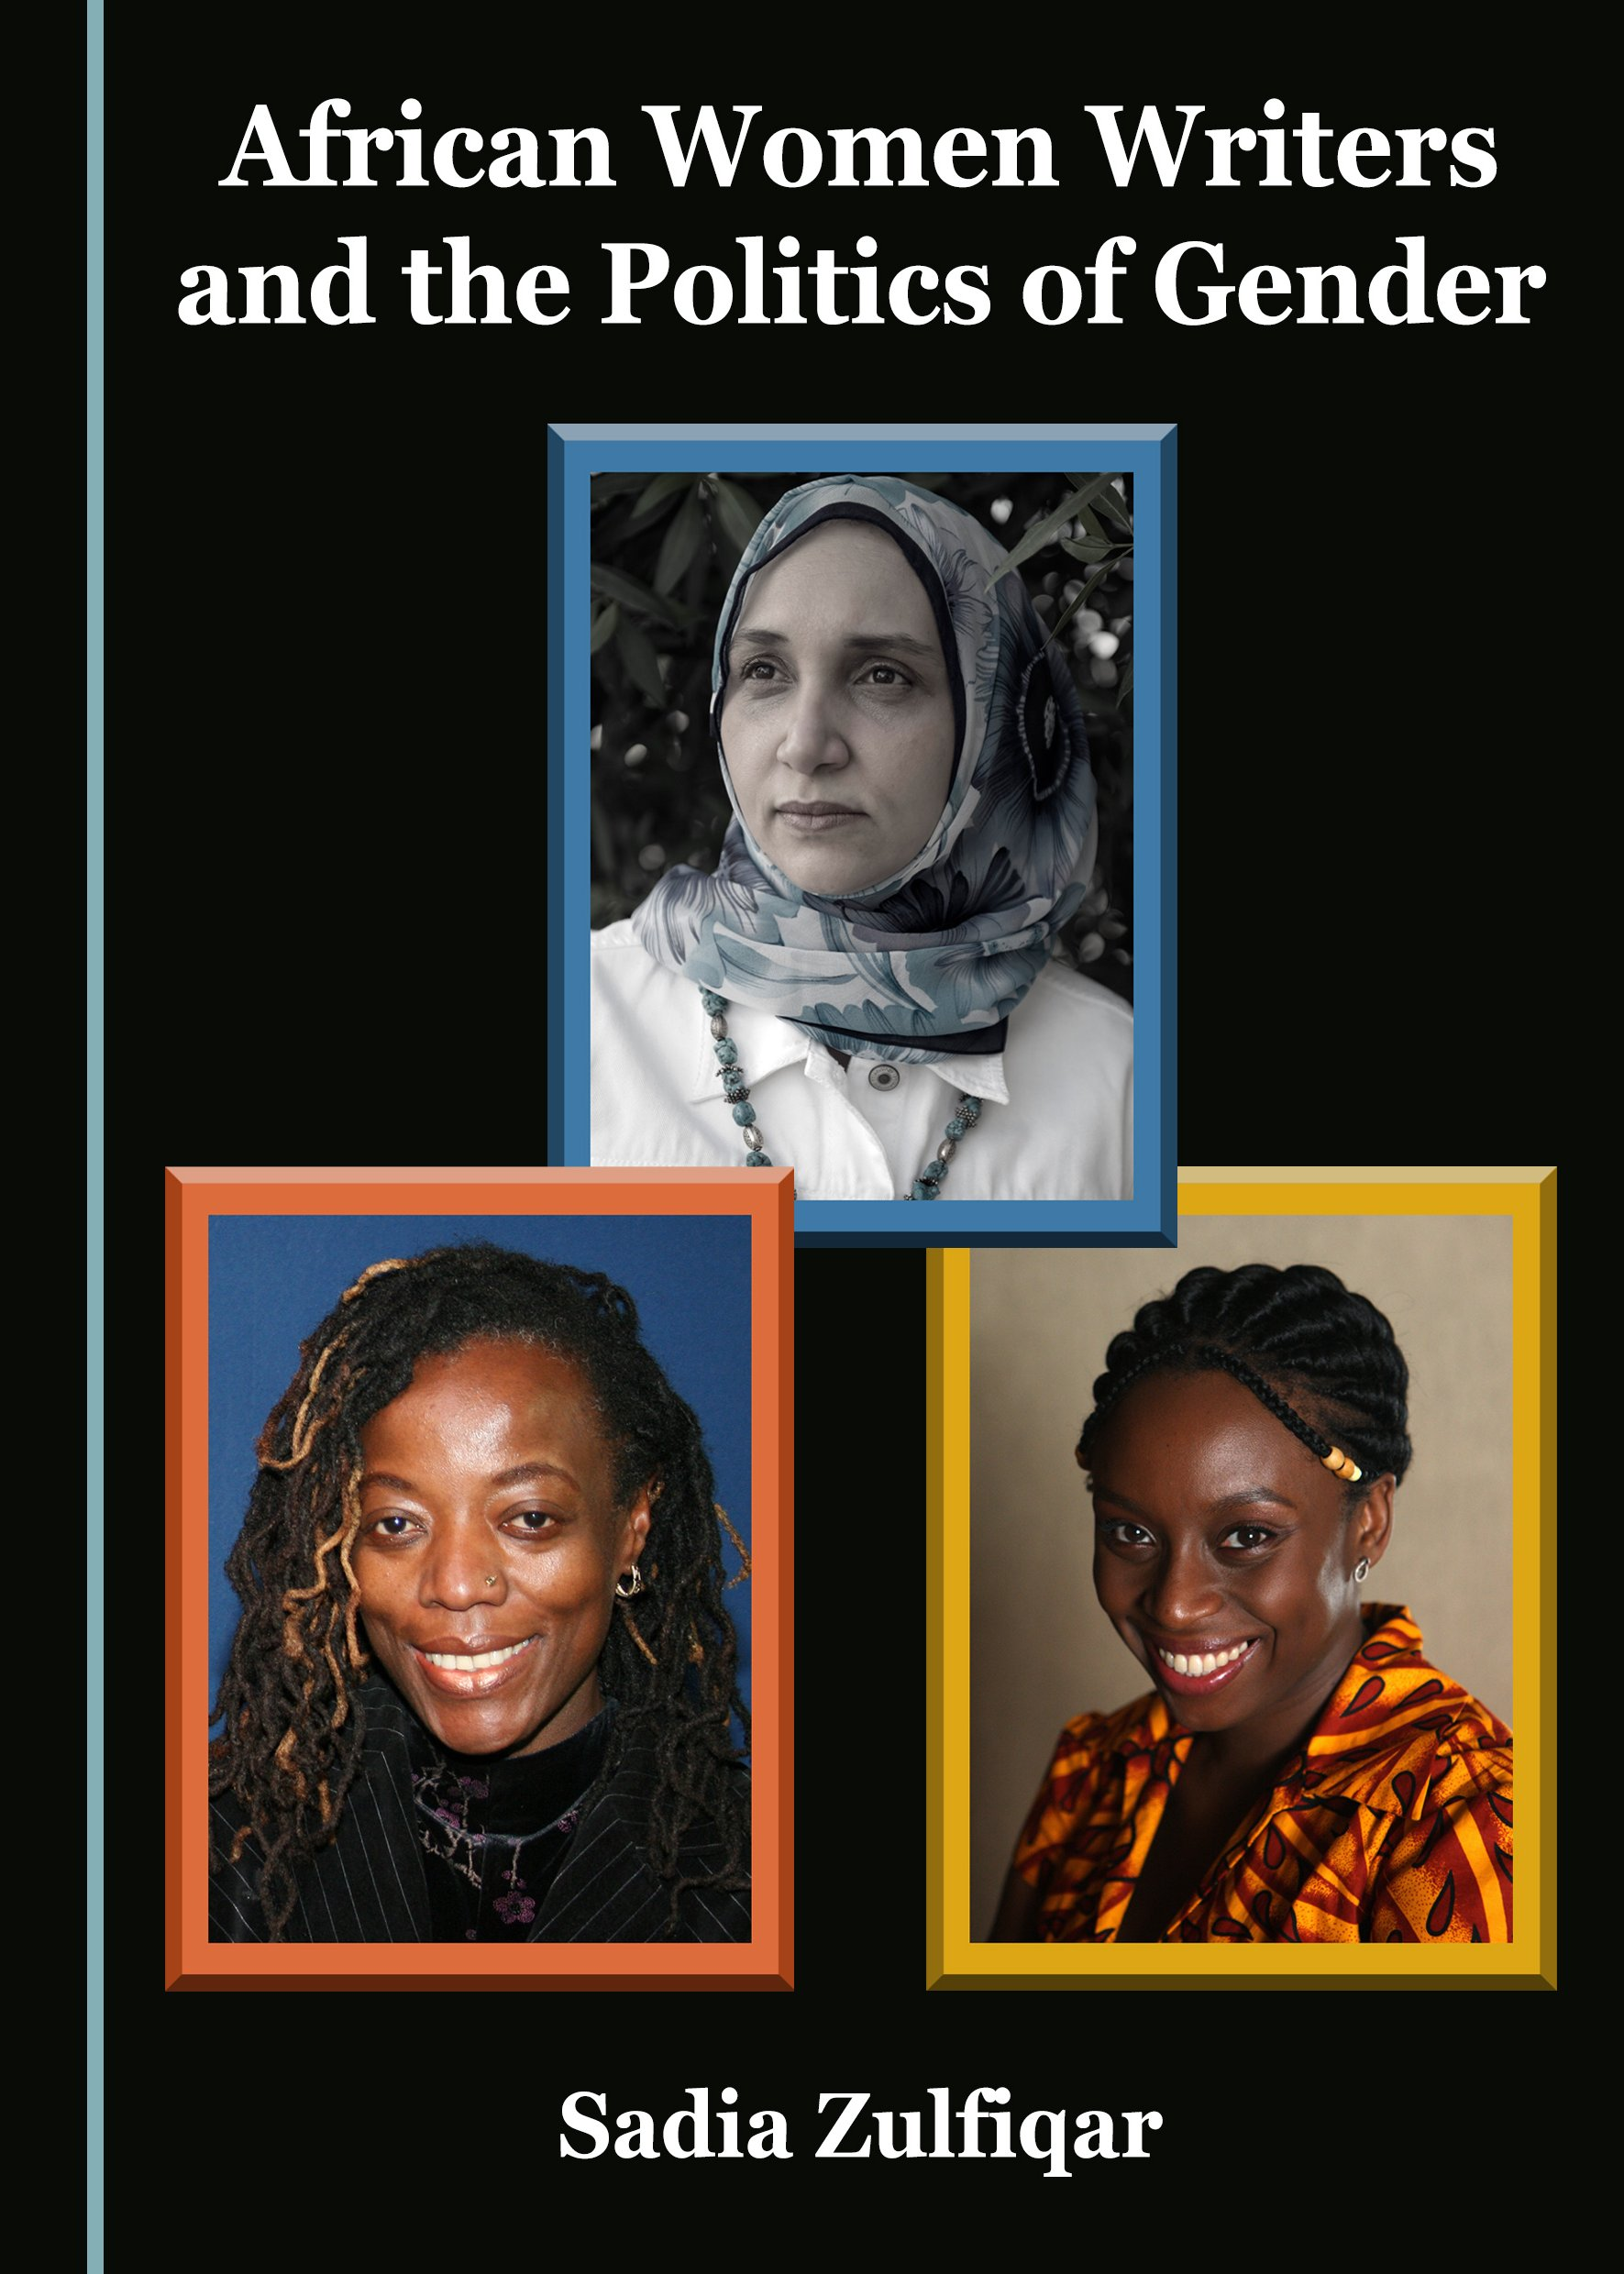 African Women Writers and the Politics of Gender